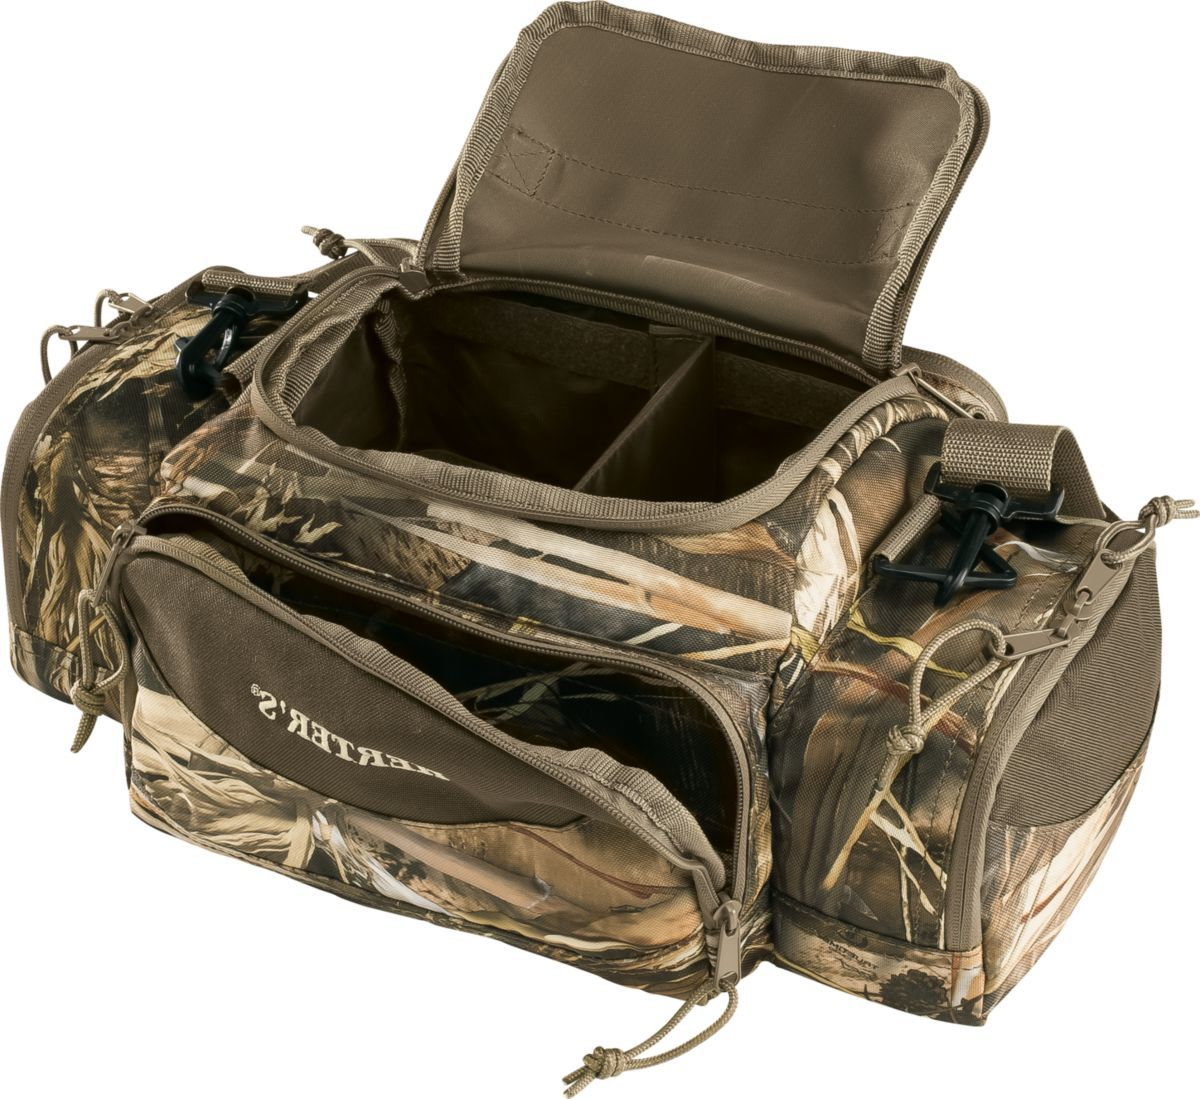 Herter's® Waterfowl Field Bag